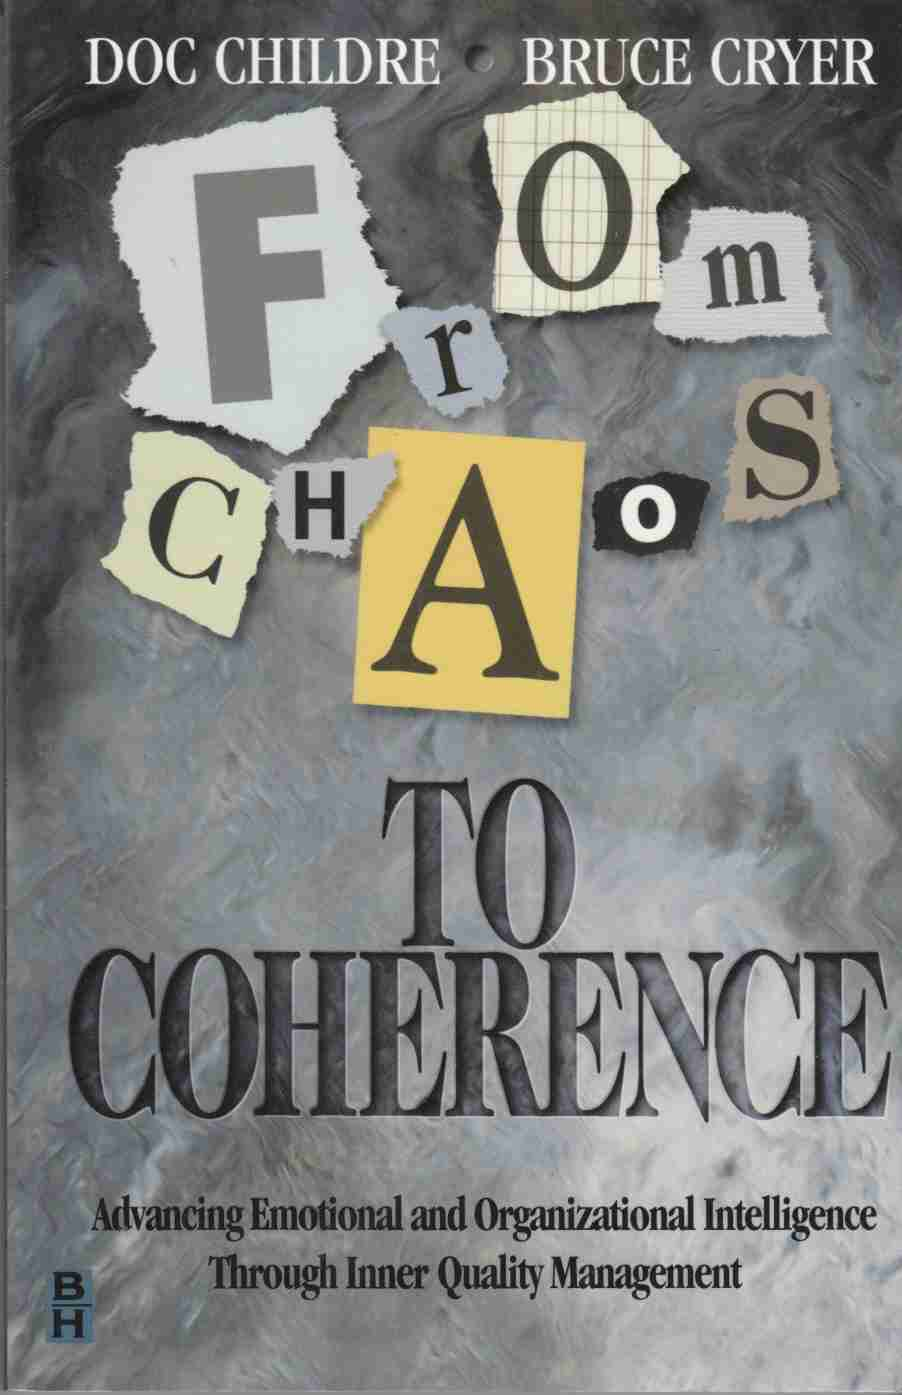 Image for From Chaos to Coherence Advancing Emotional and Organizational Intelligence through Inner Quality Management